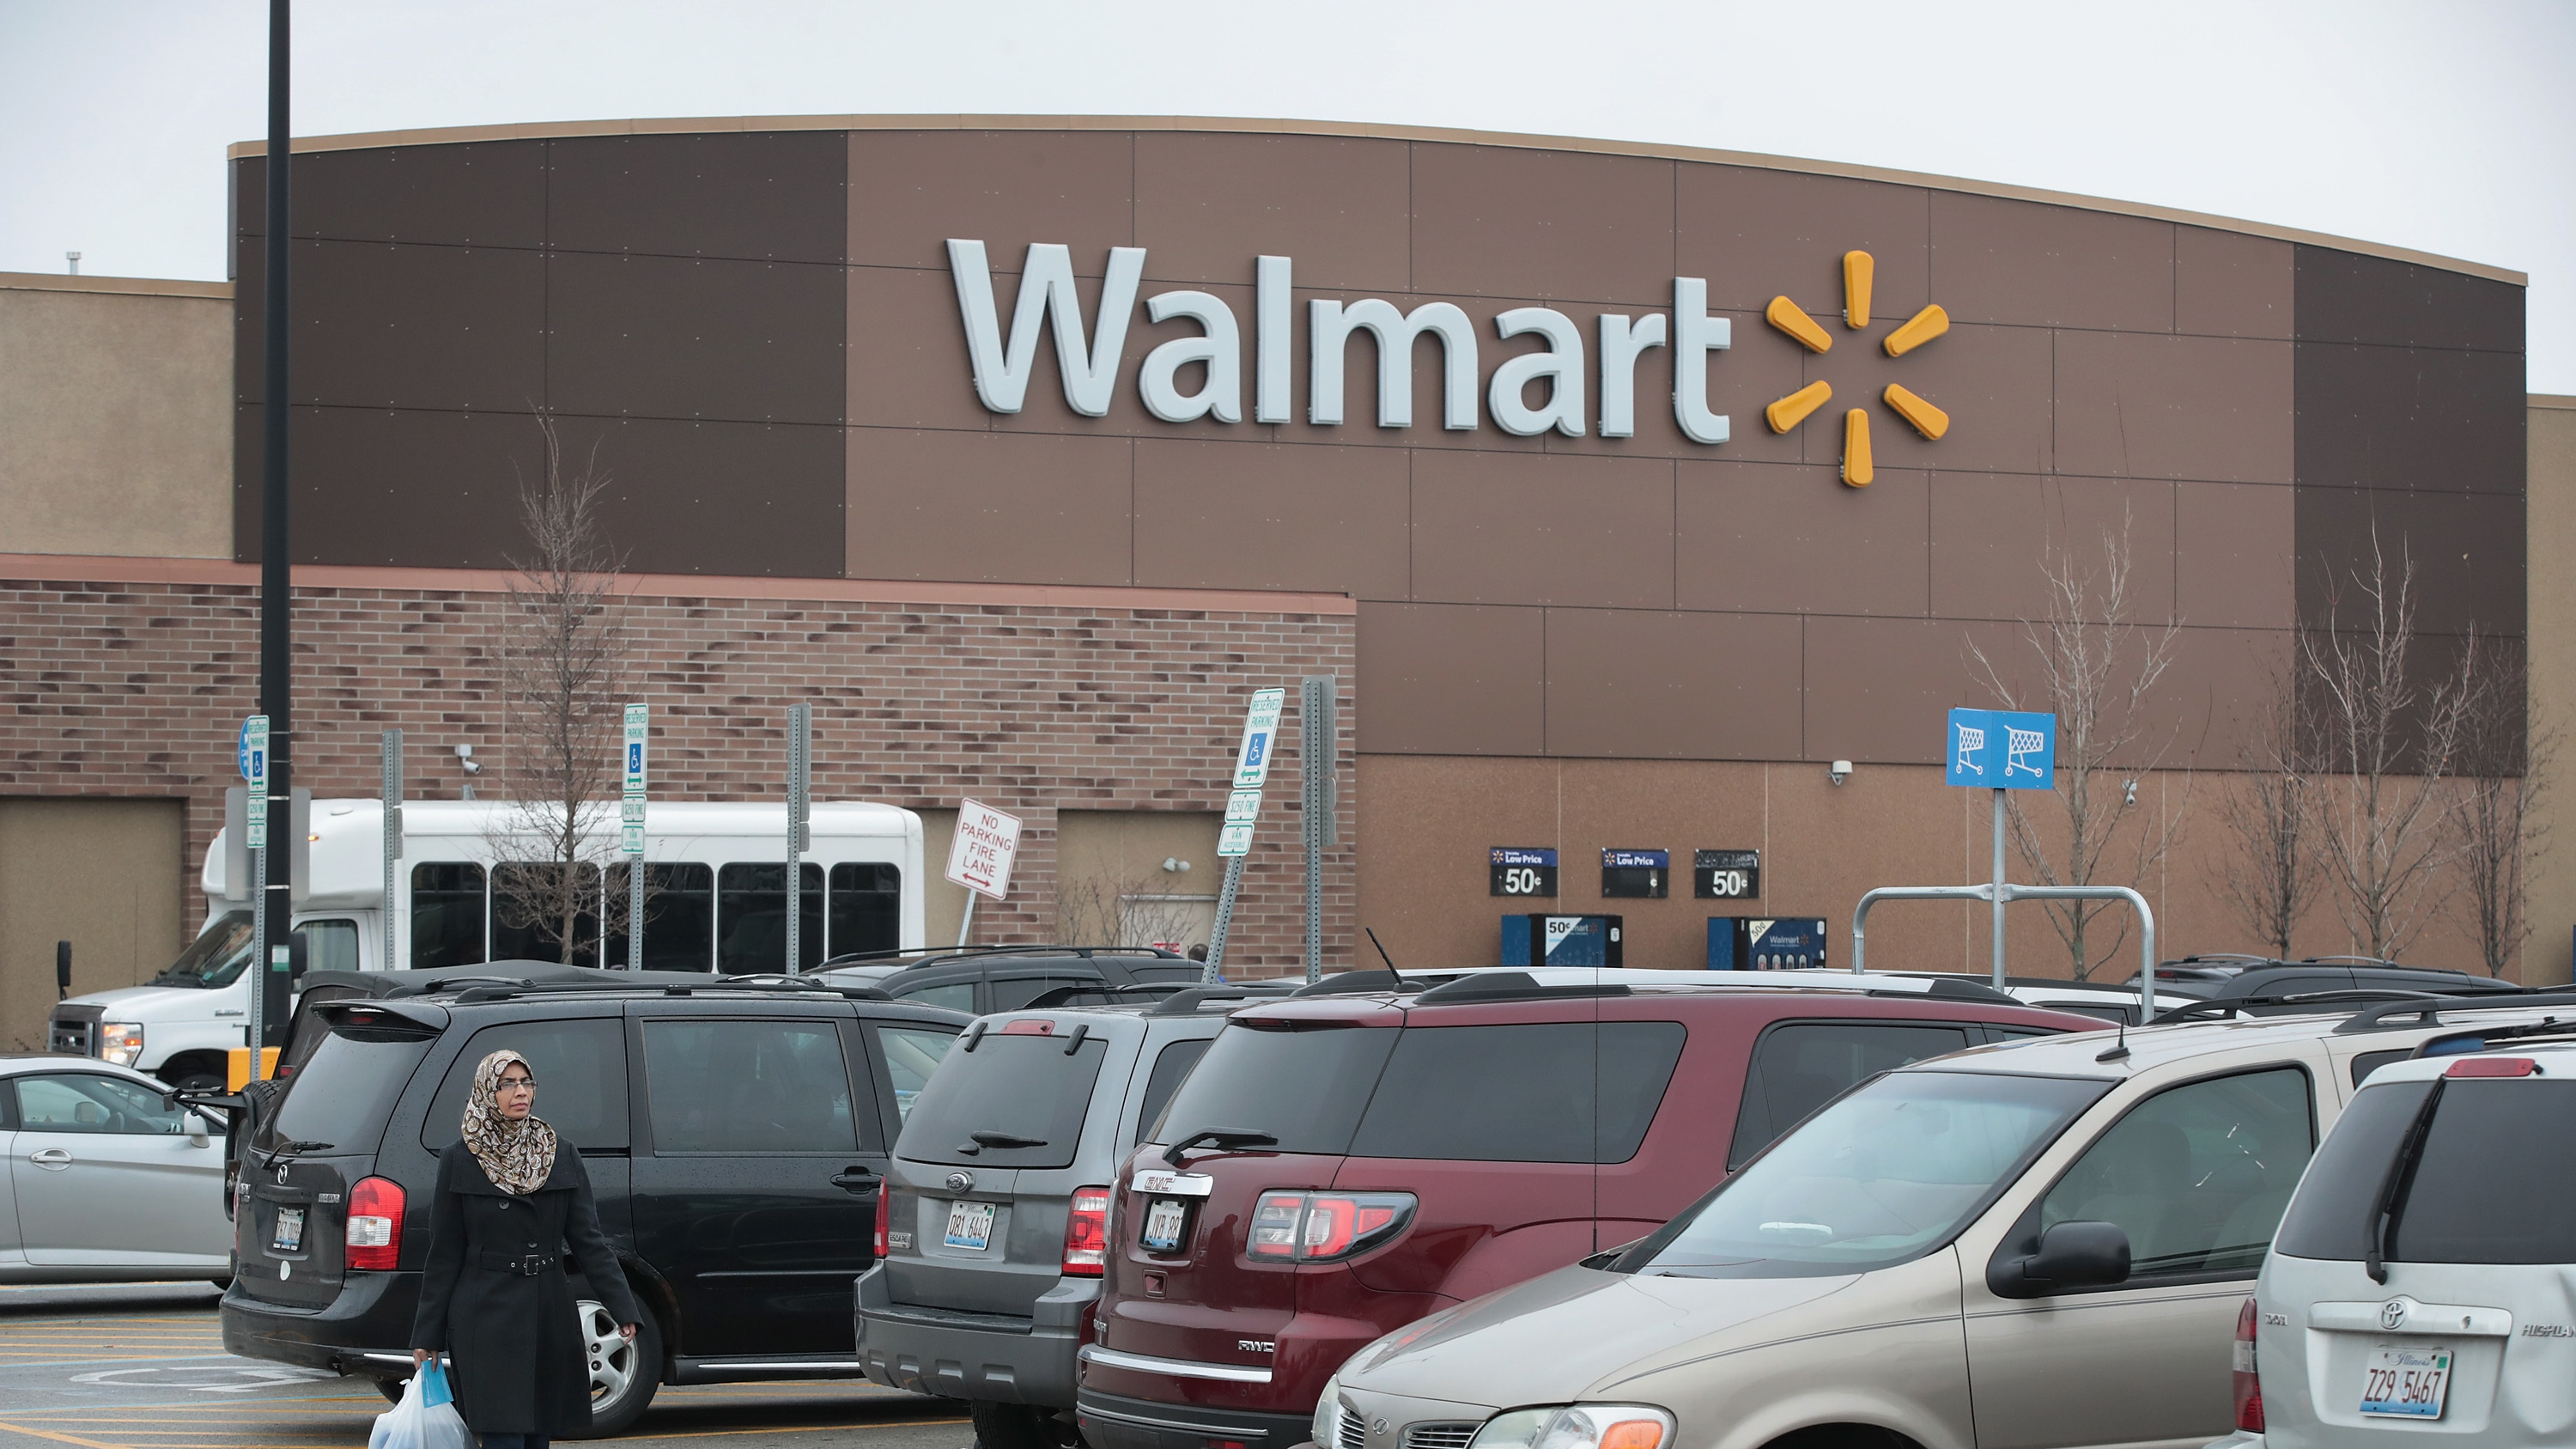 Walmart raises hourly wage to $11, expands benefits